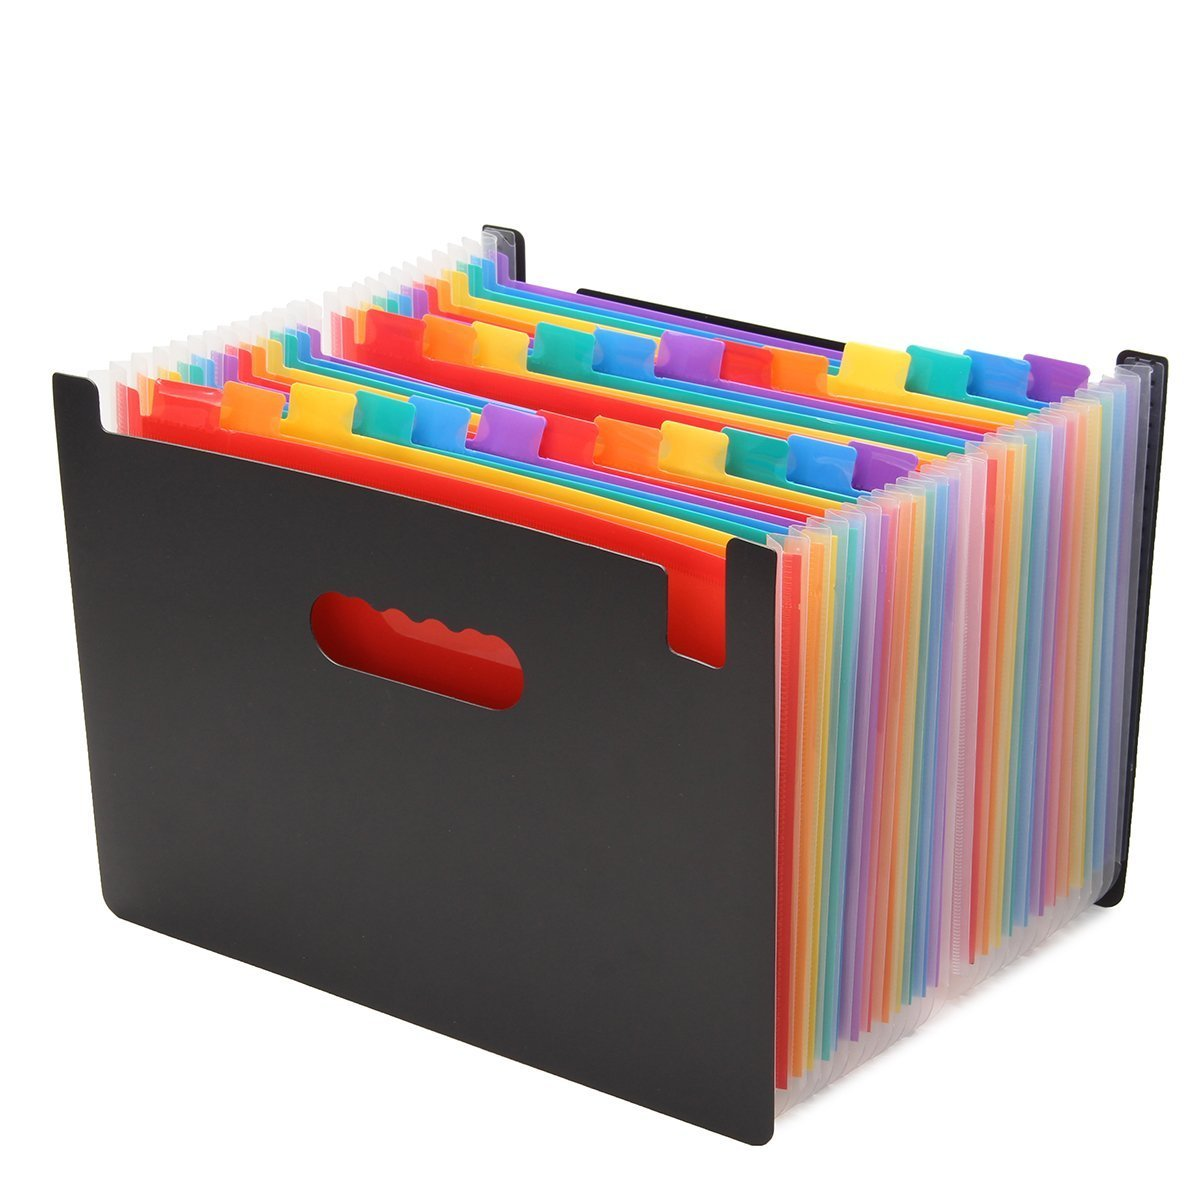 24 Pockets Expanding Files/High Capacity Multicolour Stand Expandable Portable Accordion Folder/Plastic A4 Business File Organizer Bag Upower